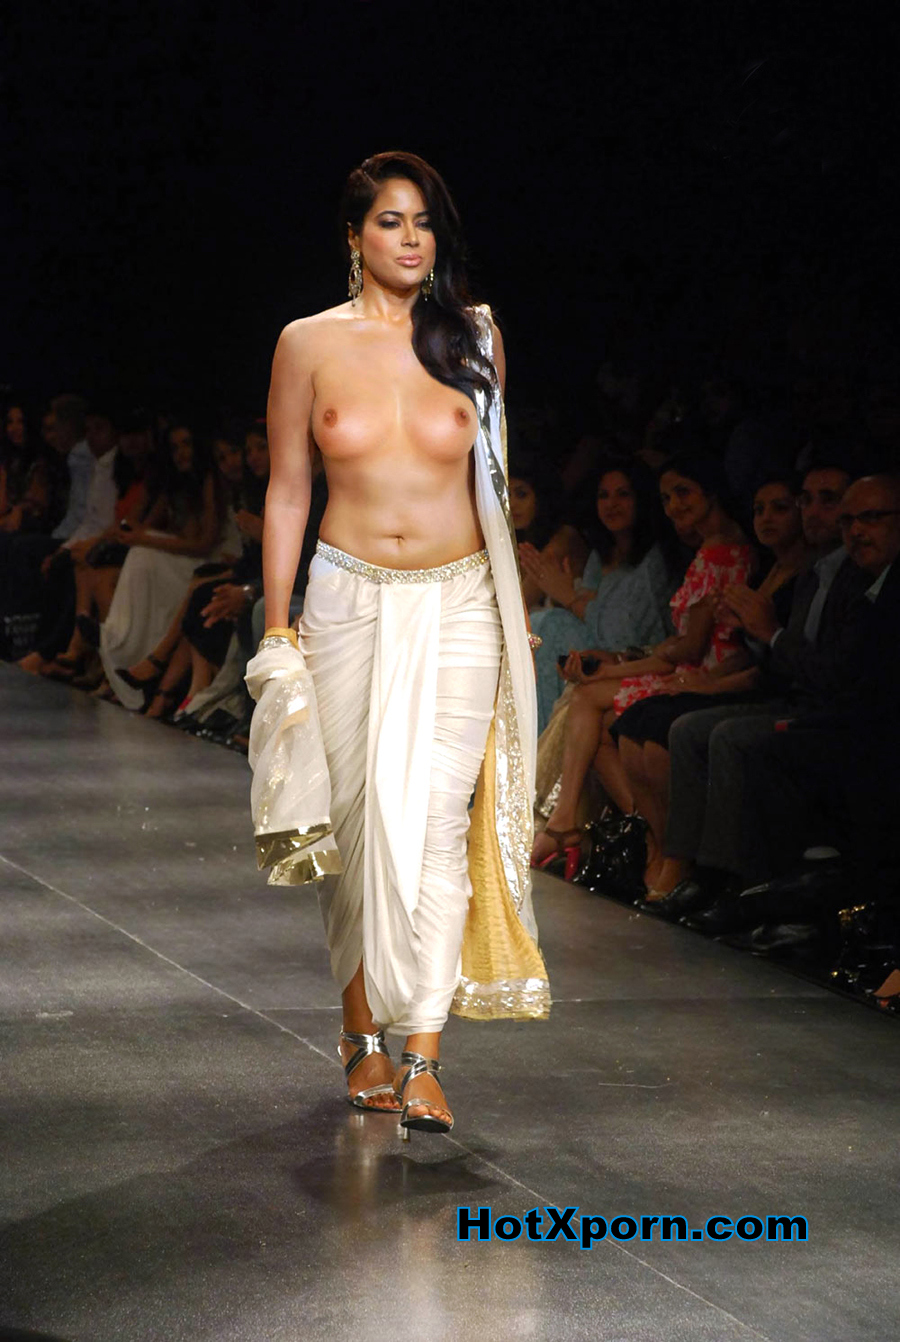 Hot Bollywood Actress Sameera Reddy Walking Nude at Fashion Week FAKE